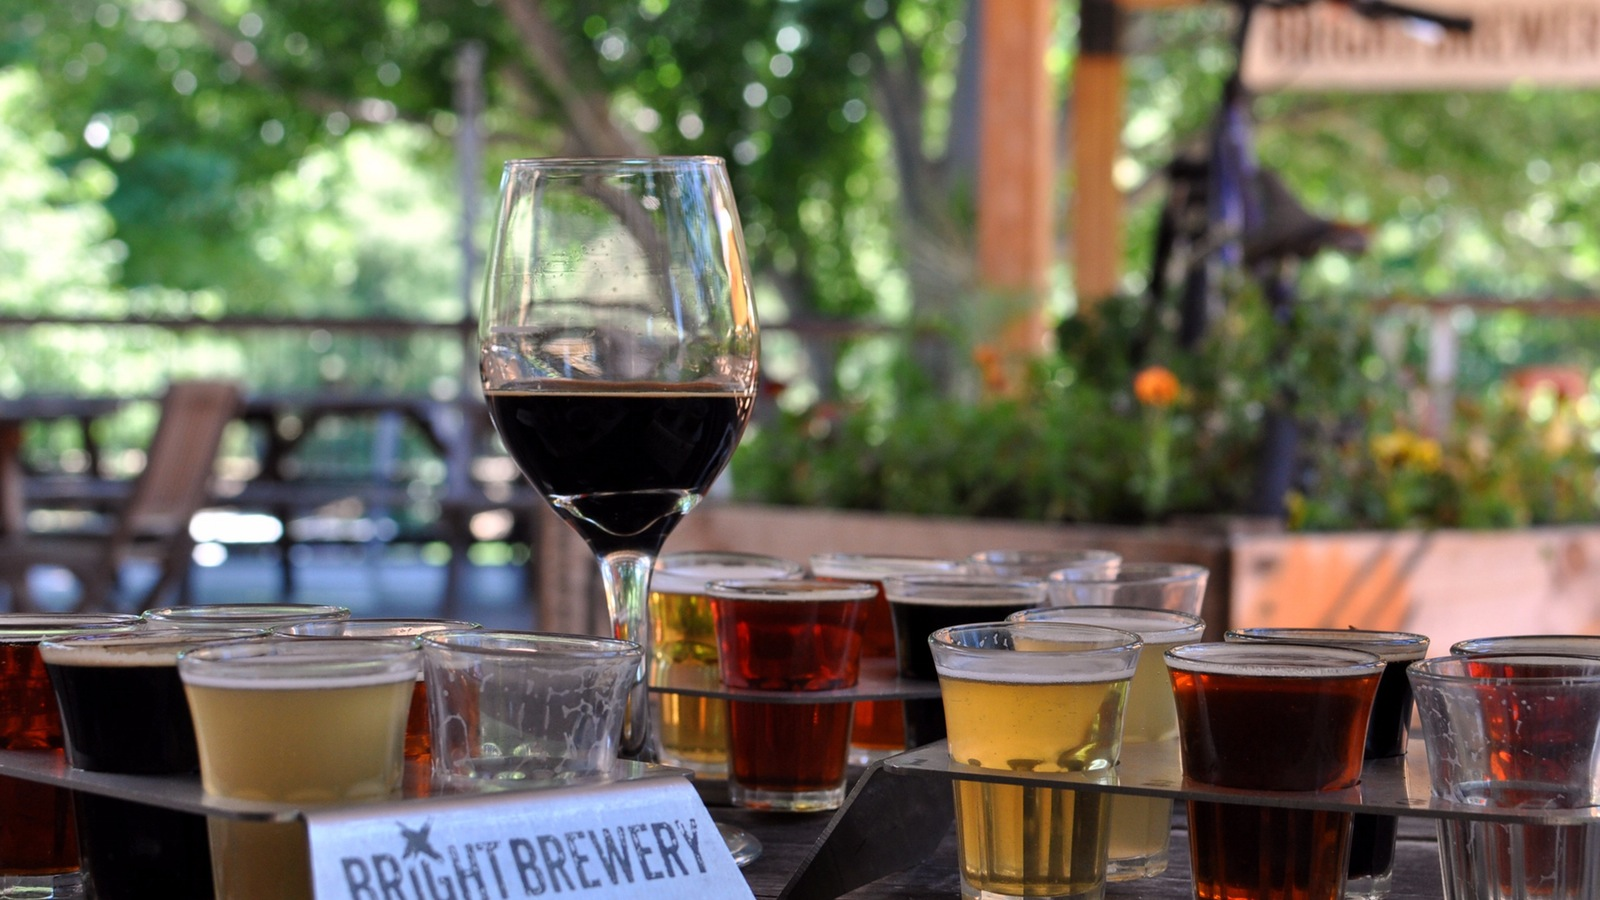 Tasting Trays and a glass of Stubborn Russian at Bright Brewery